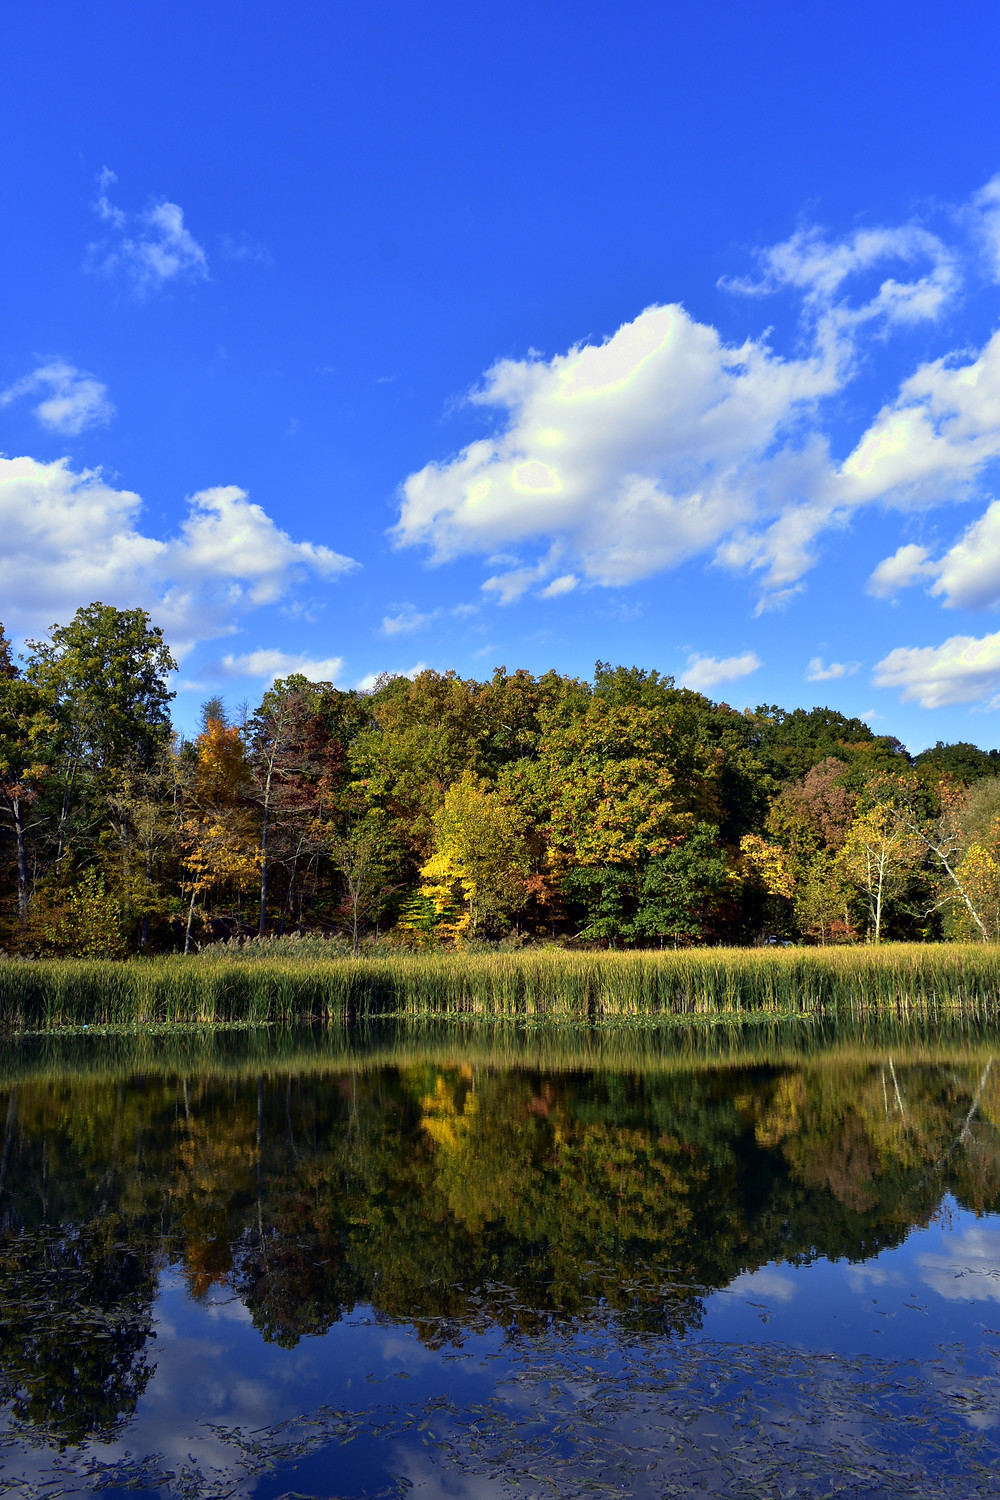 Blue skies overhead are reflected in the crystal blue waters of the many lakes in Cuyahoga National Park in Ohio